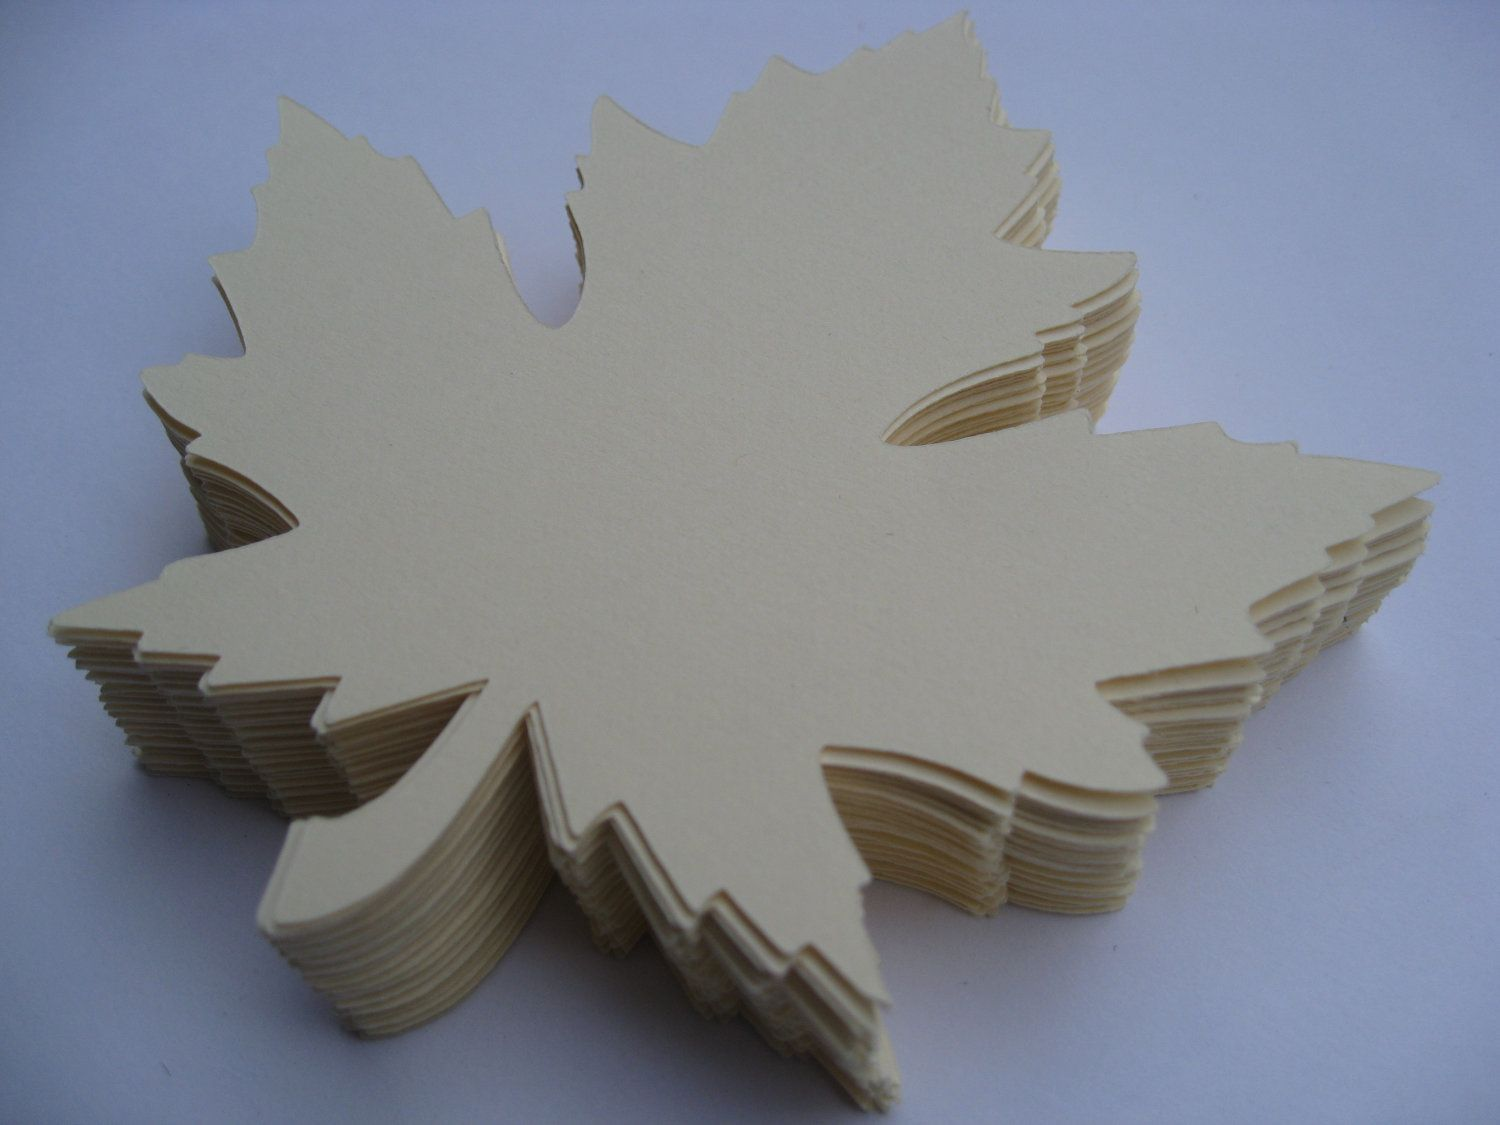 80 maple leaves 3 inch choose your colors escort cards place 80 maple leaves 3 inch choose your colors escort cards place cards jeuxipadfo Choice Image